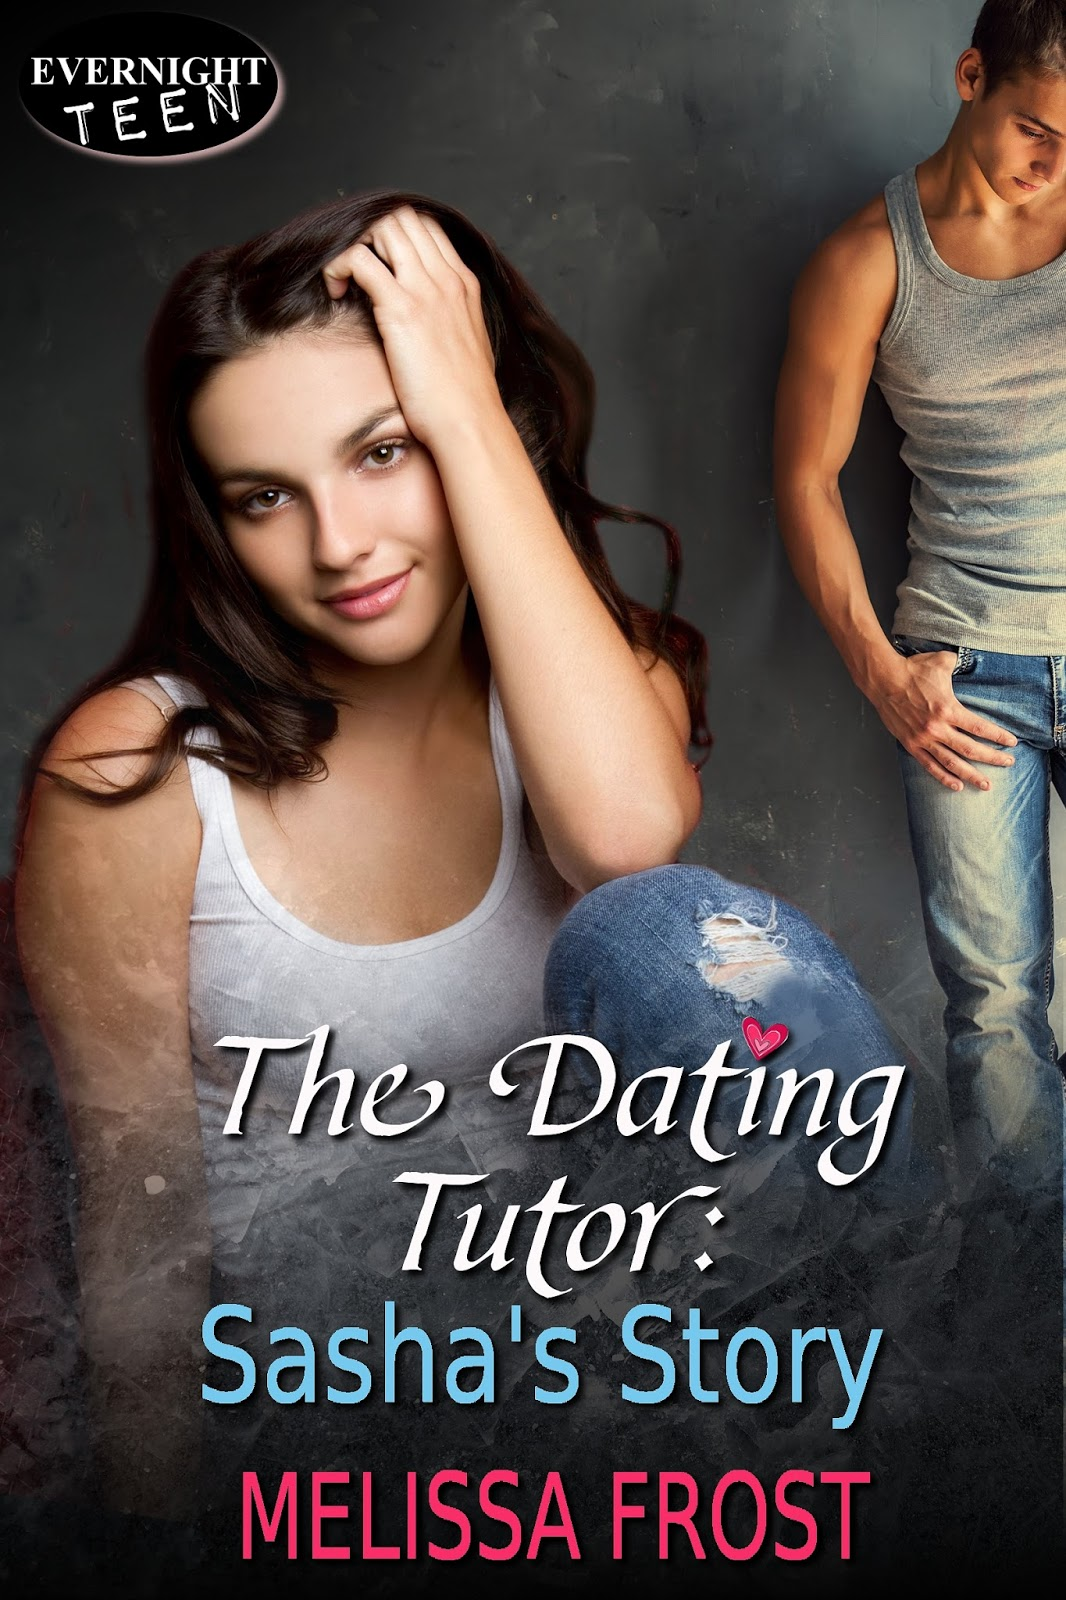 Special expert for contemporary romance The Dating Tutor: Sasha's Story by Melissa Frost